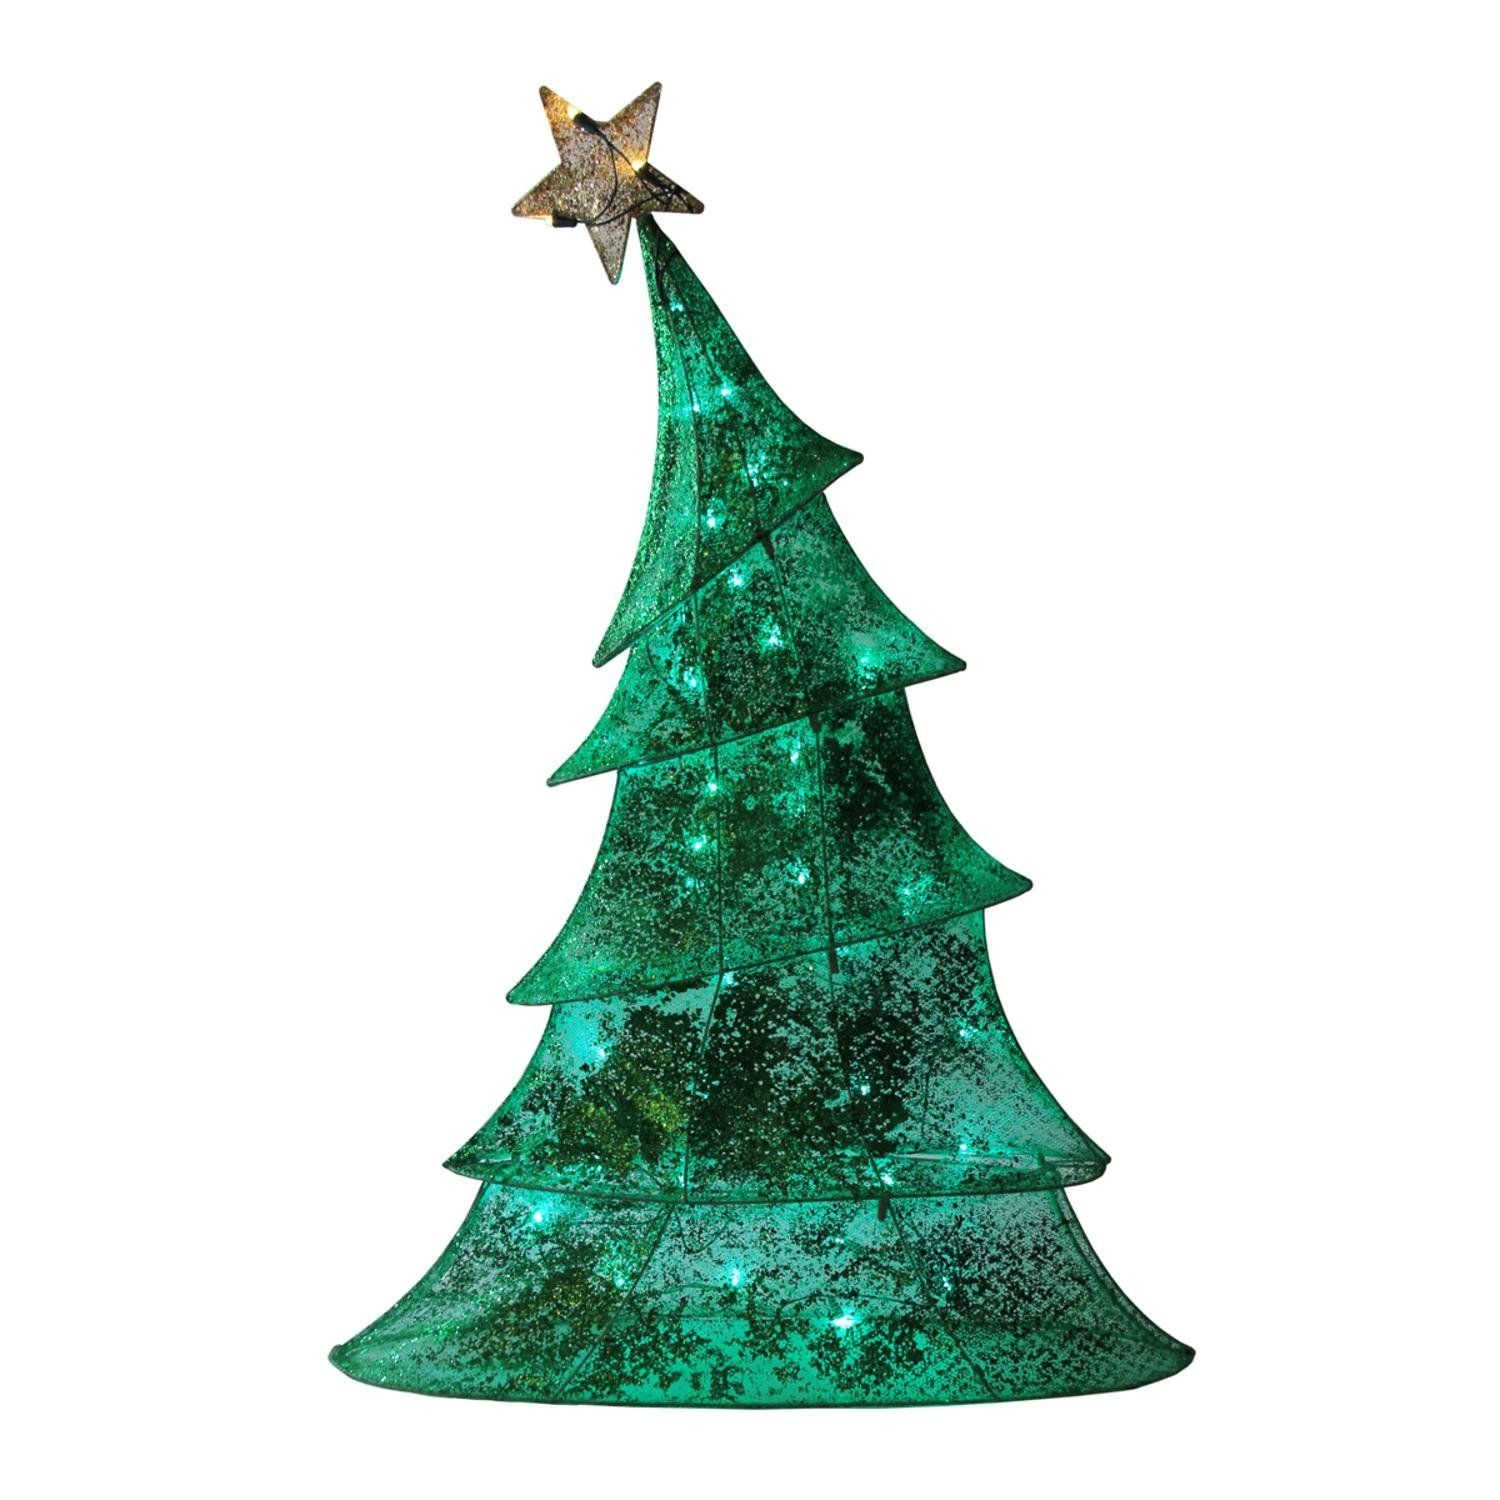 48 LED Lighted 2D Green Glitter Mesh Whimsical Christmas Tree Yard